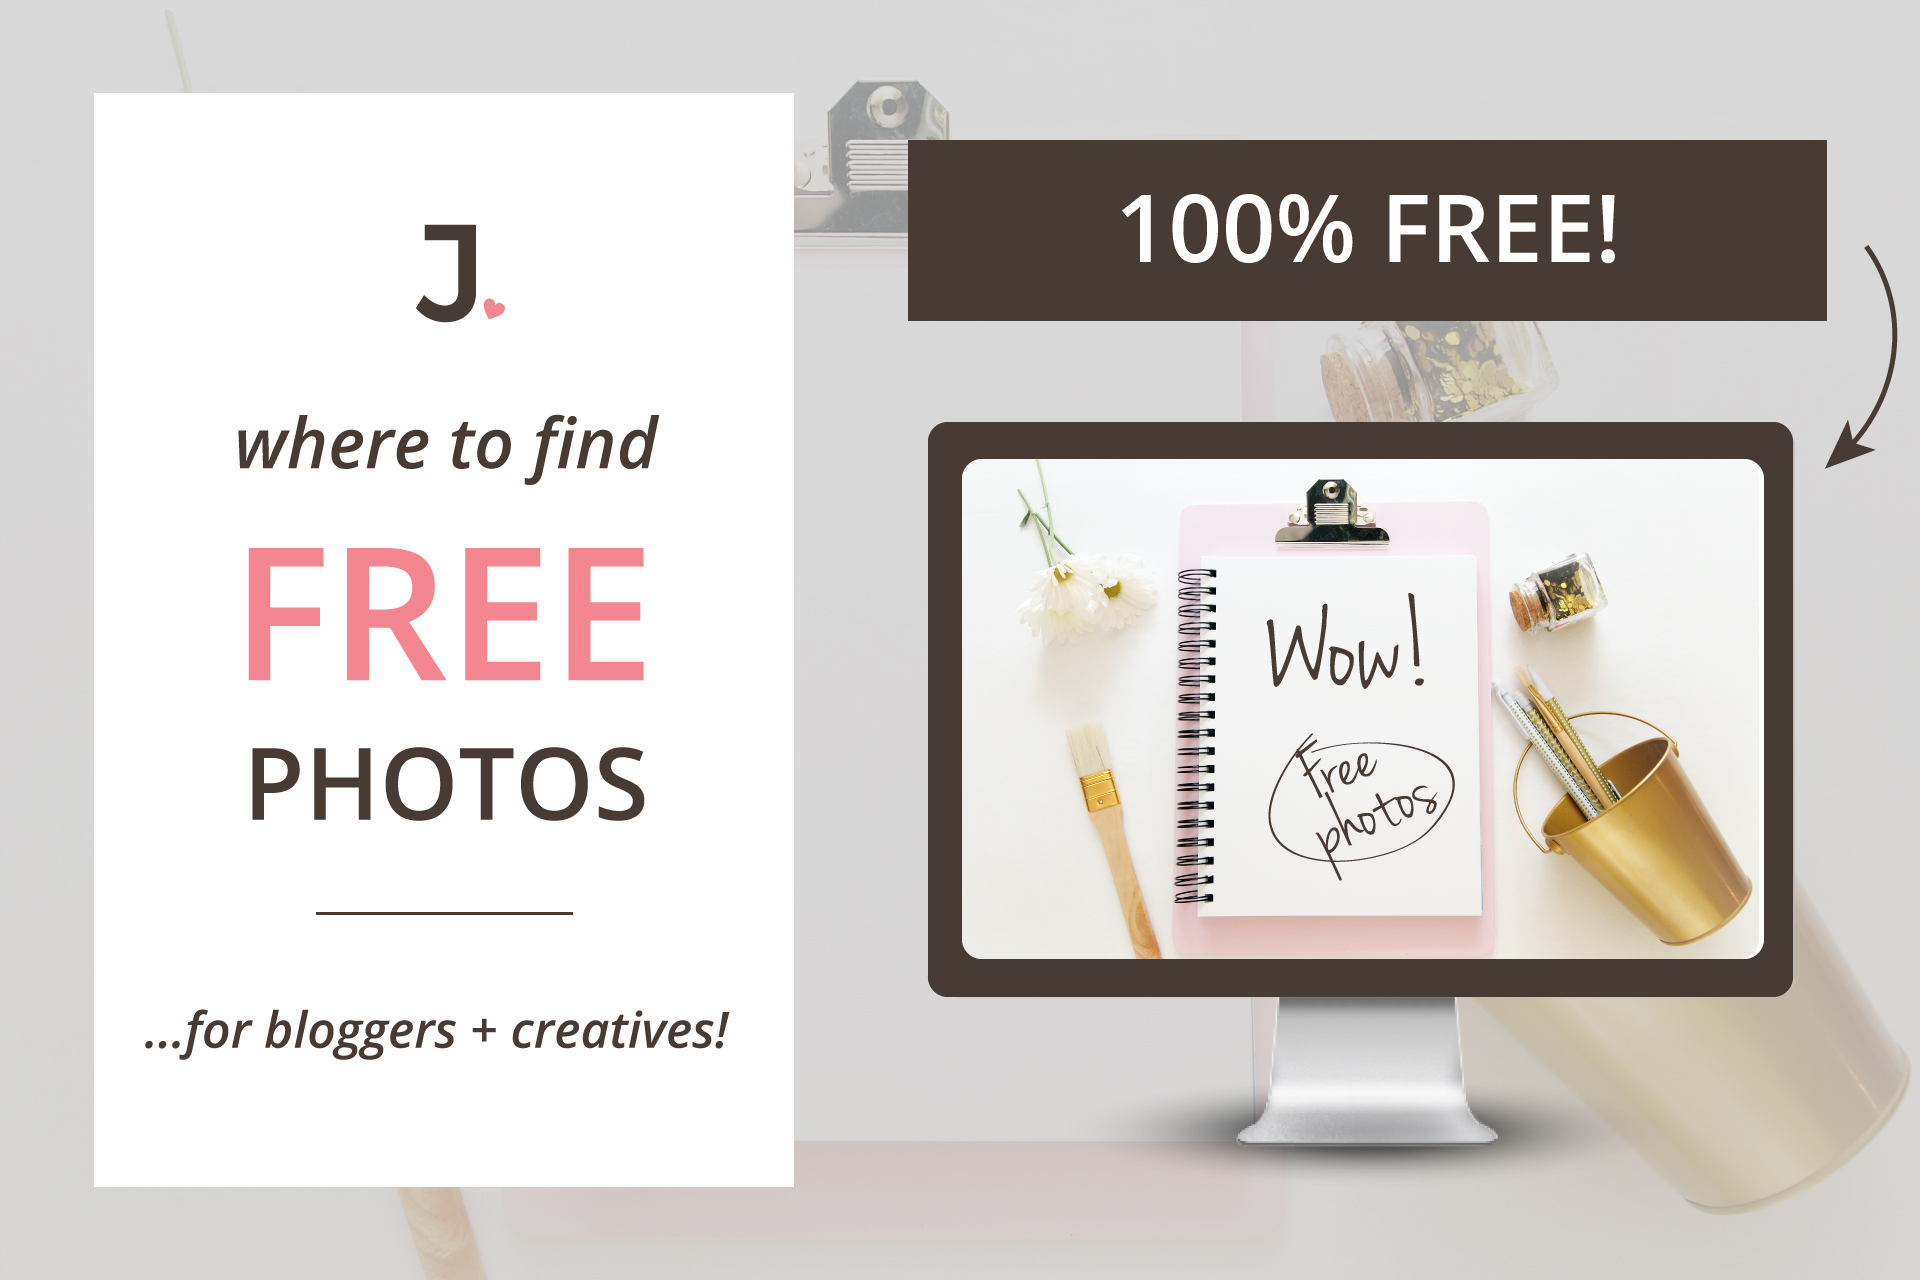 Today I am going to share my TEN best free stock photo websites. Tired of paying for stock photos? Looking for high-quality FREE images to use on your blog + social media posts? Jennifer-Franklin.com